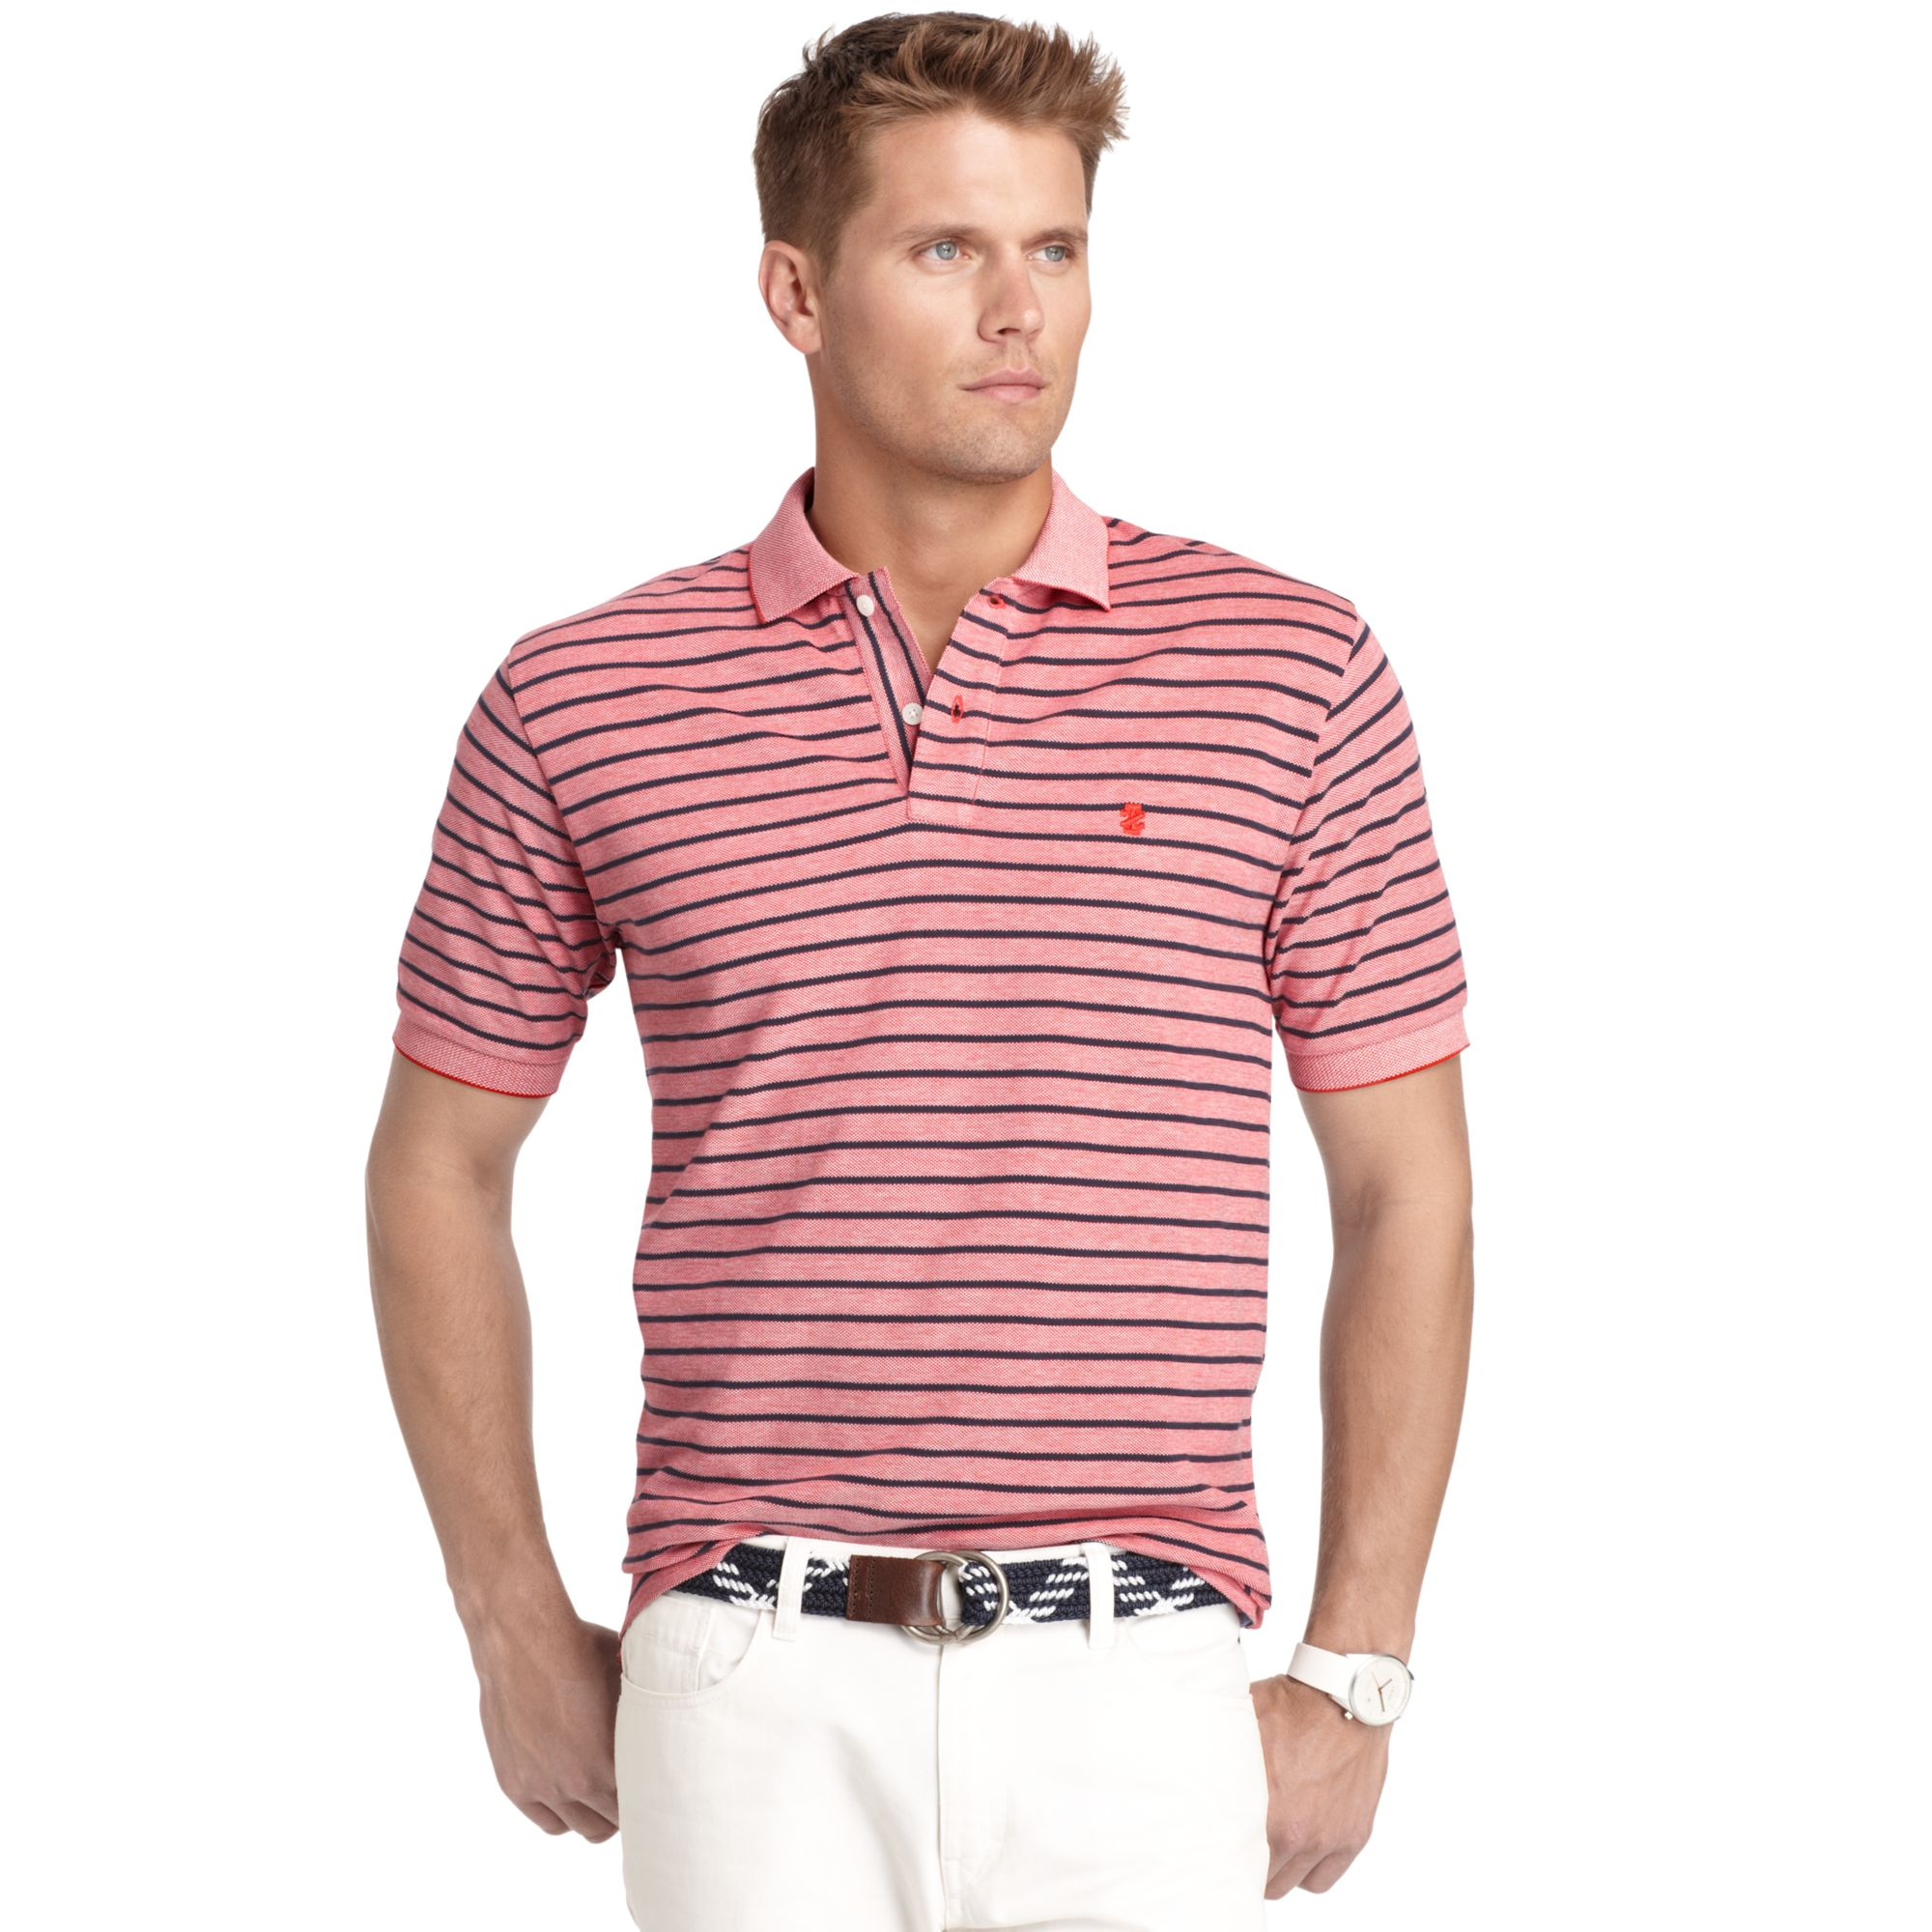 Izod big and tall shirt short sleeve oxford stripe polo in for Lacoste big and tall polo shirts